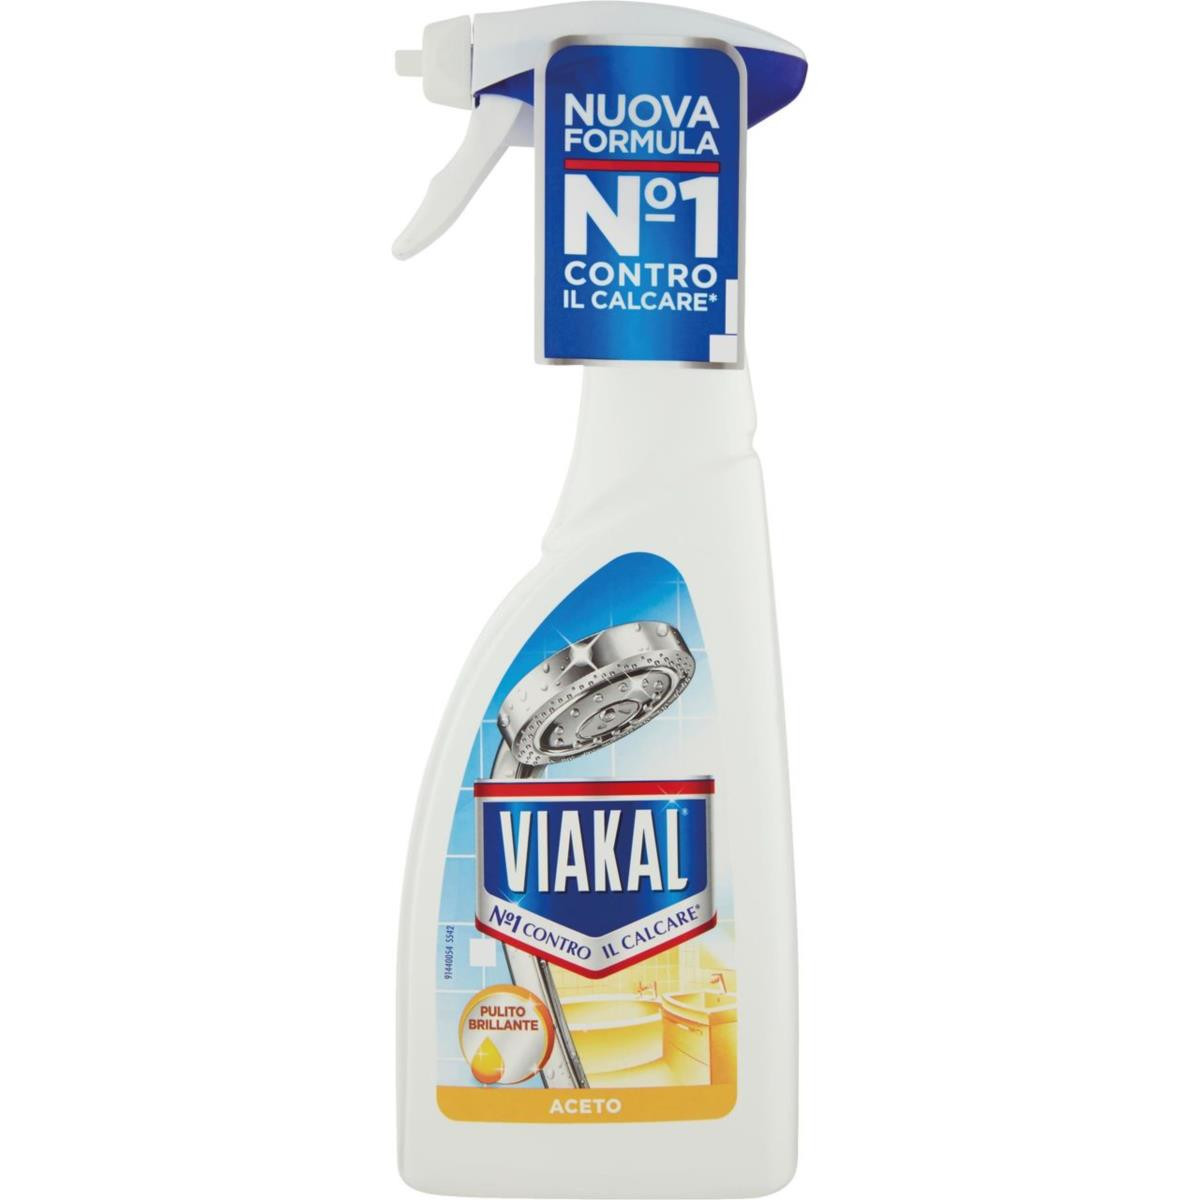 VIAKAL SPRAY ACETO 515 ML